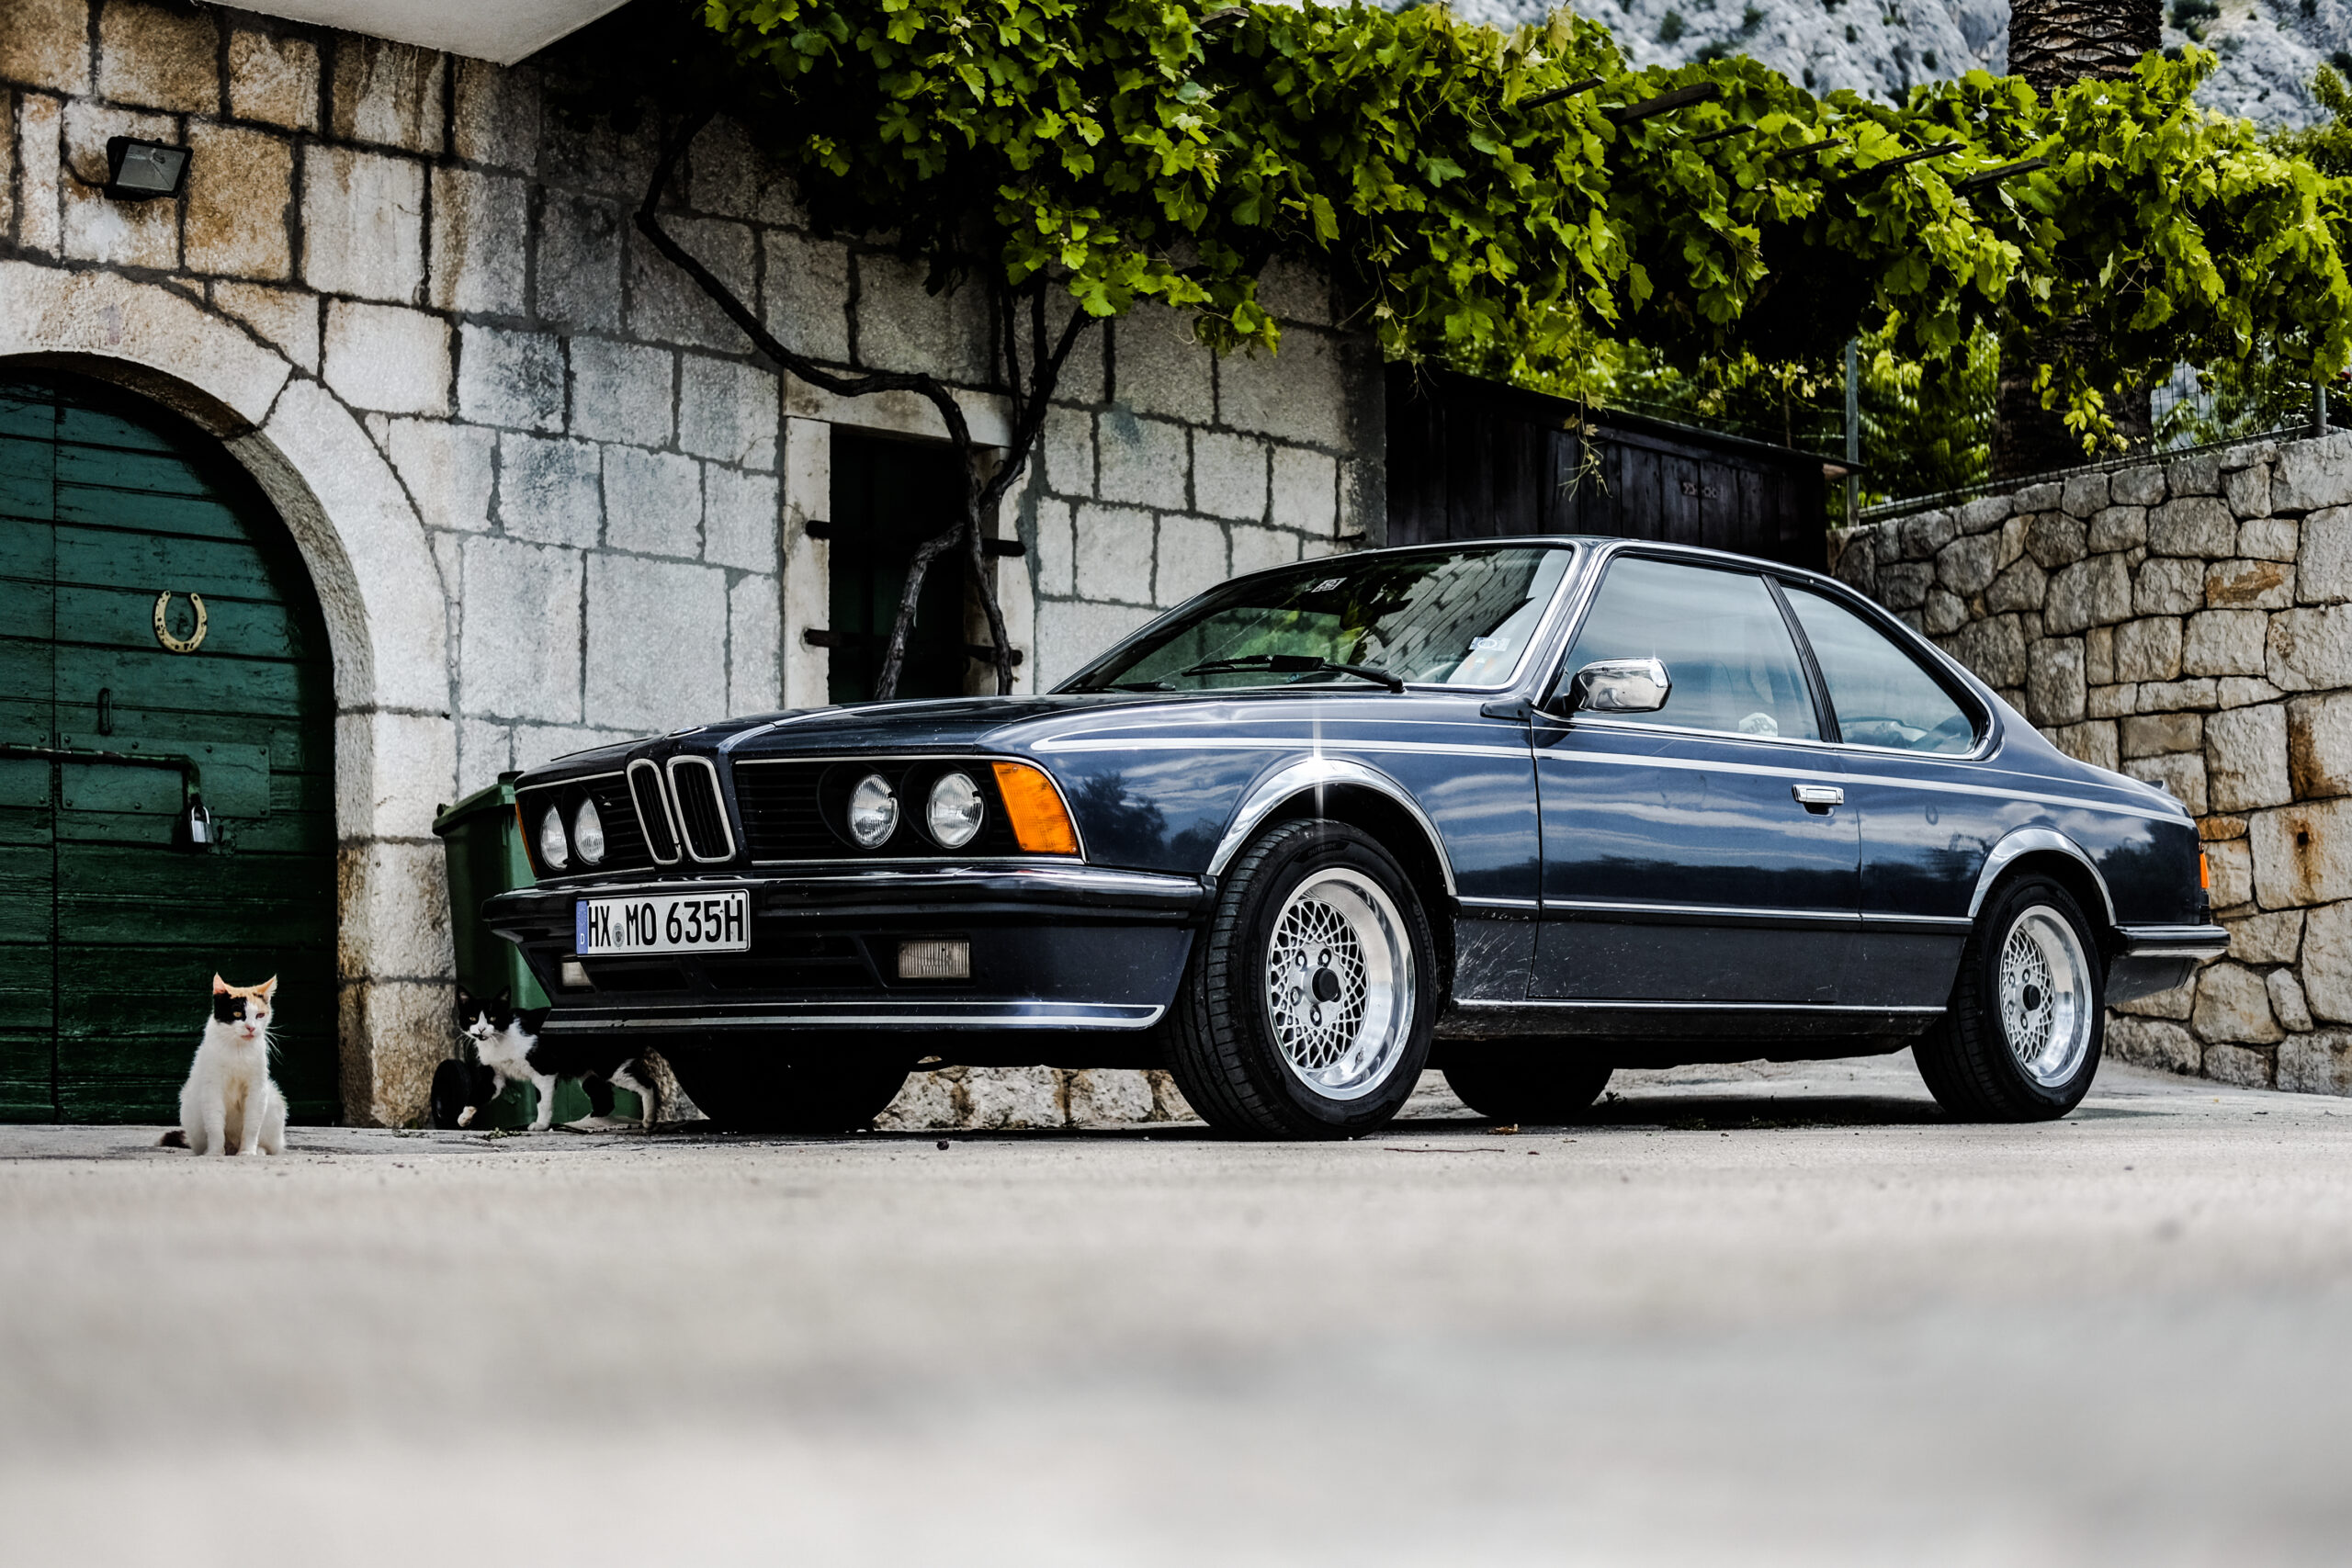 BMW 635 On The Road